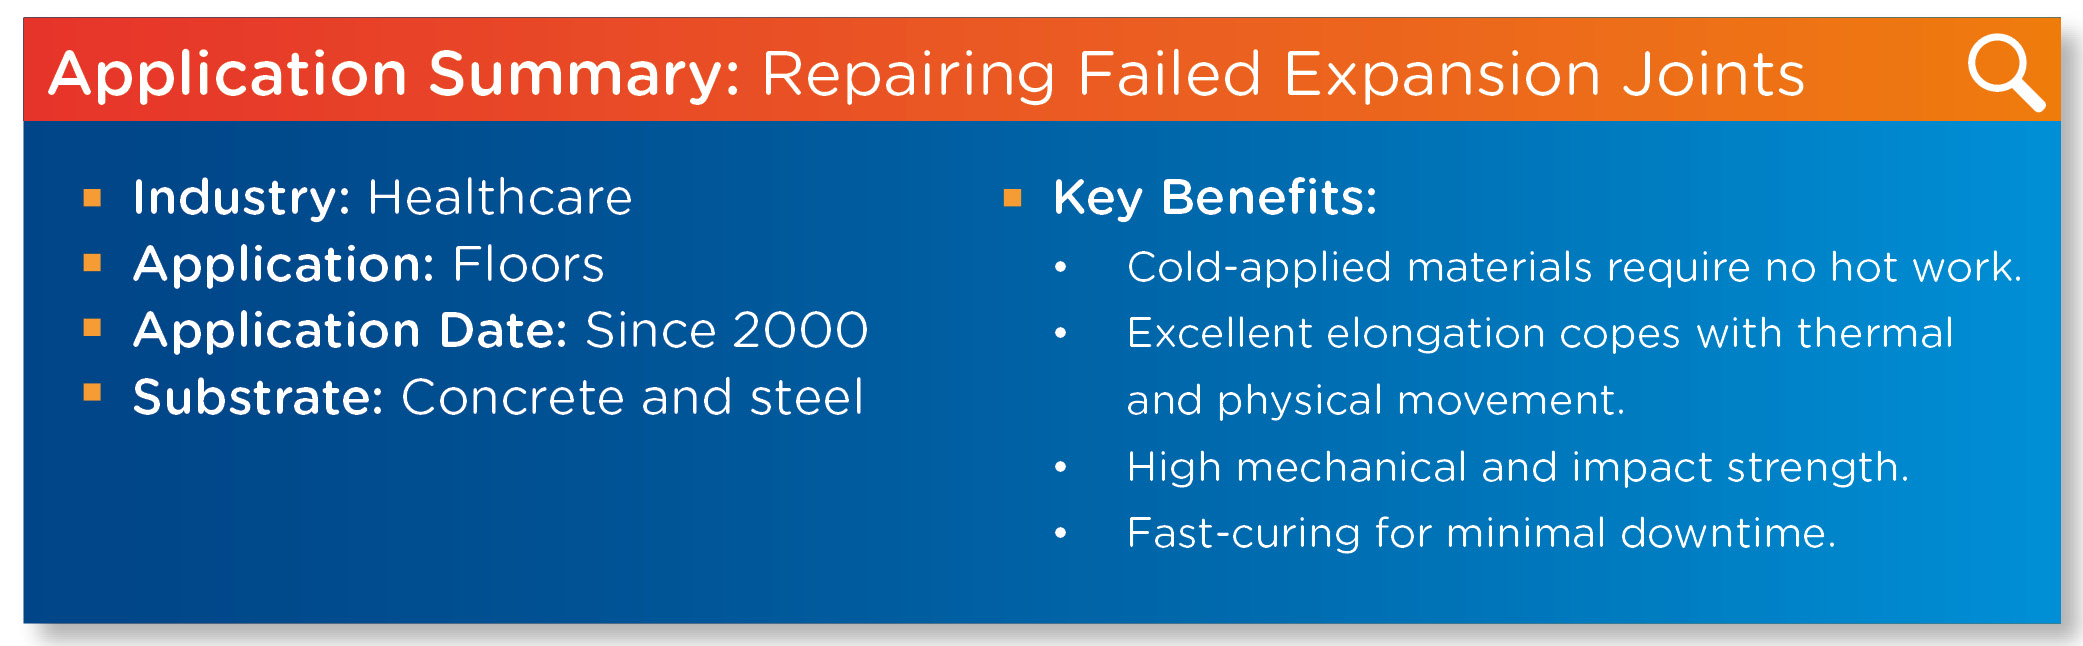 Expansion Joints Application Summary